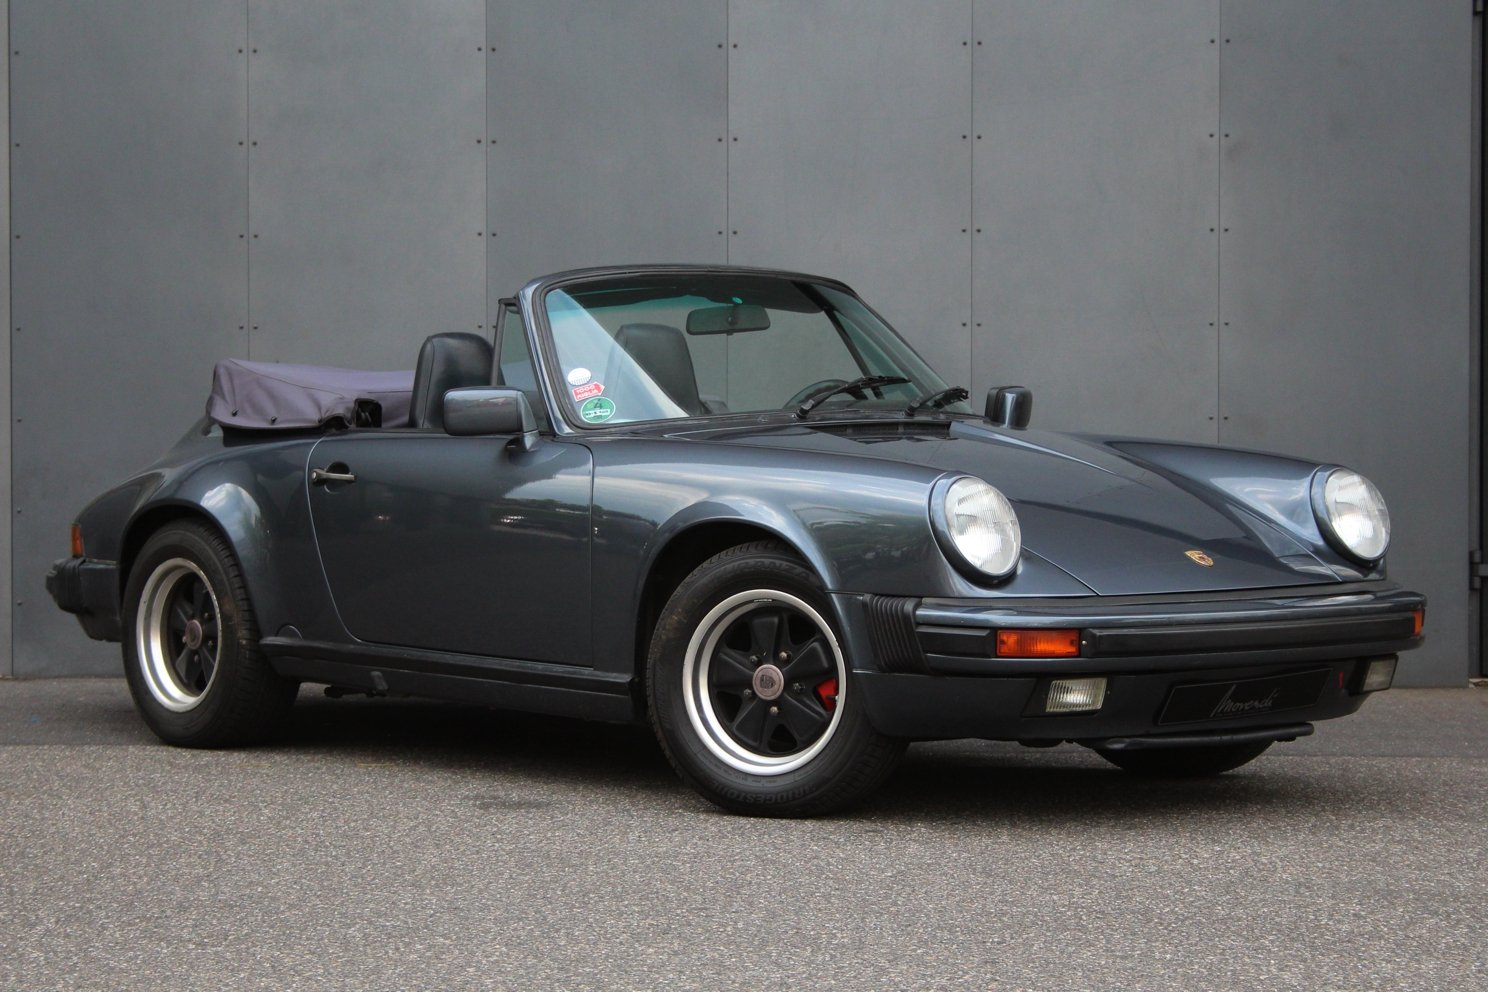 1987 Porsche 911 3.2 Carrera Cabriolet G50 Getriebe LHD For Sale (picture 1 of 6)